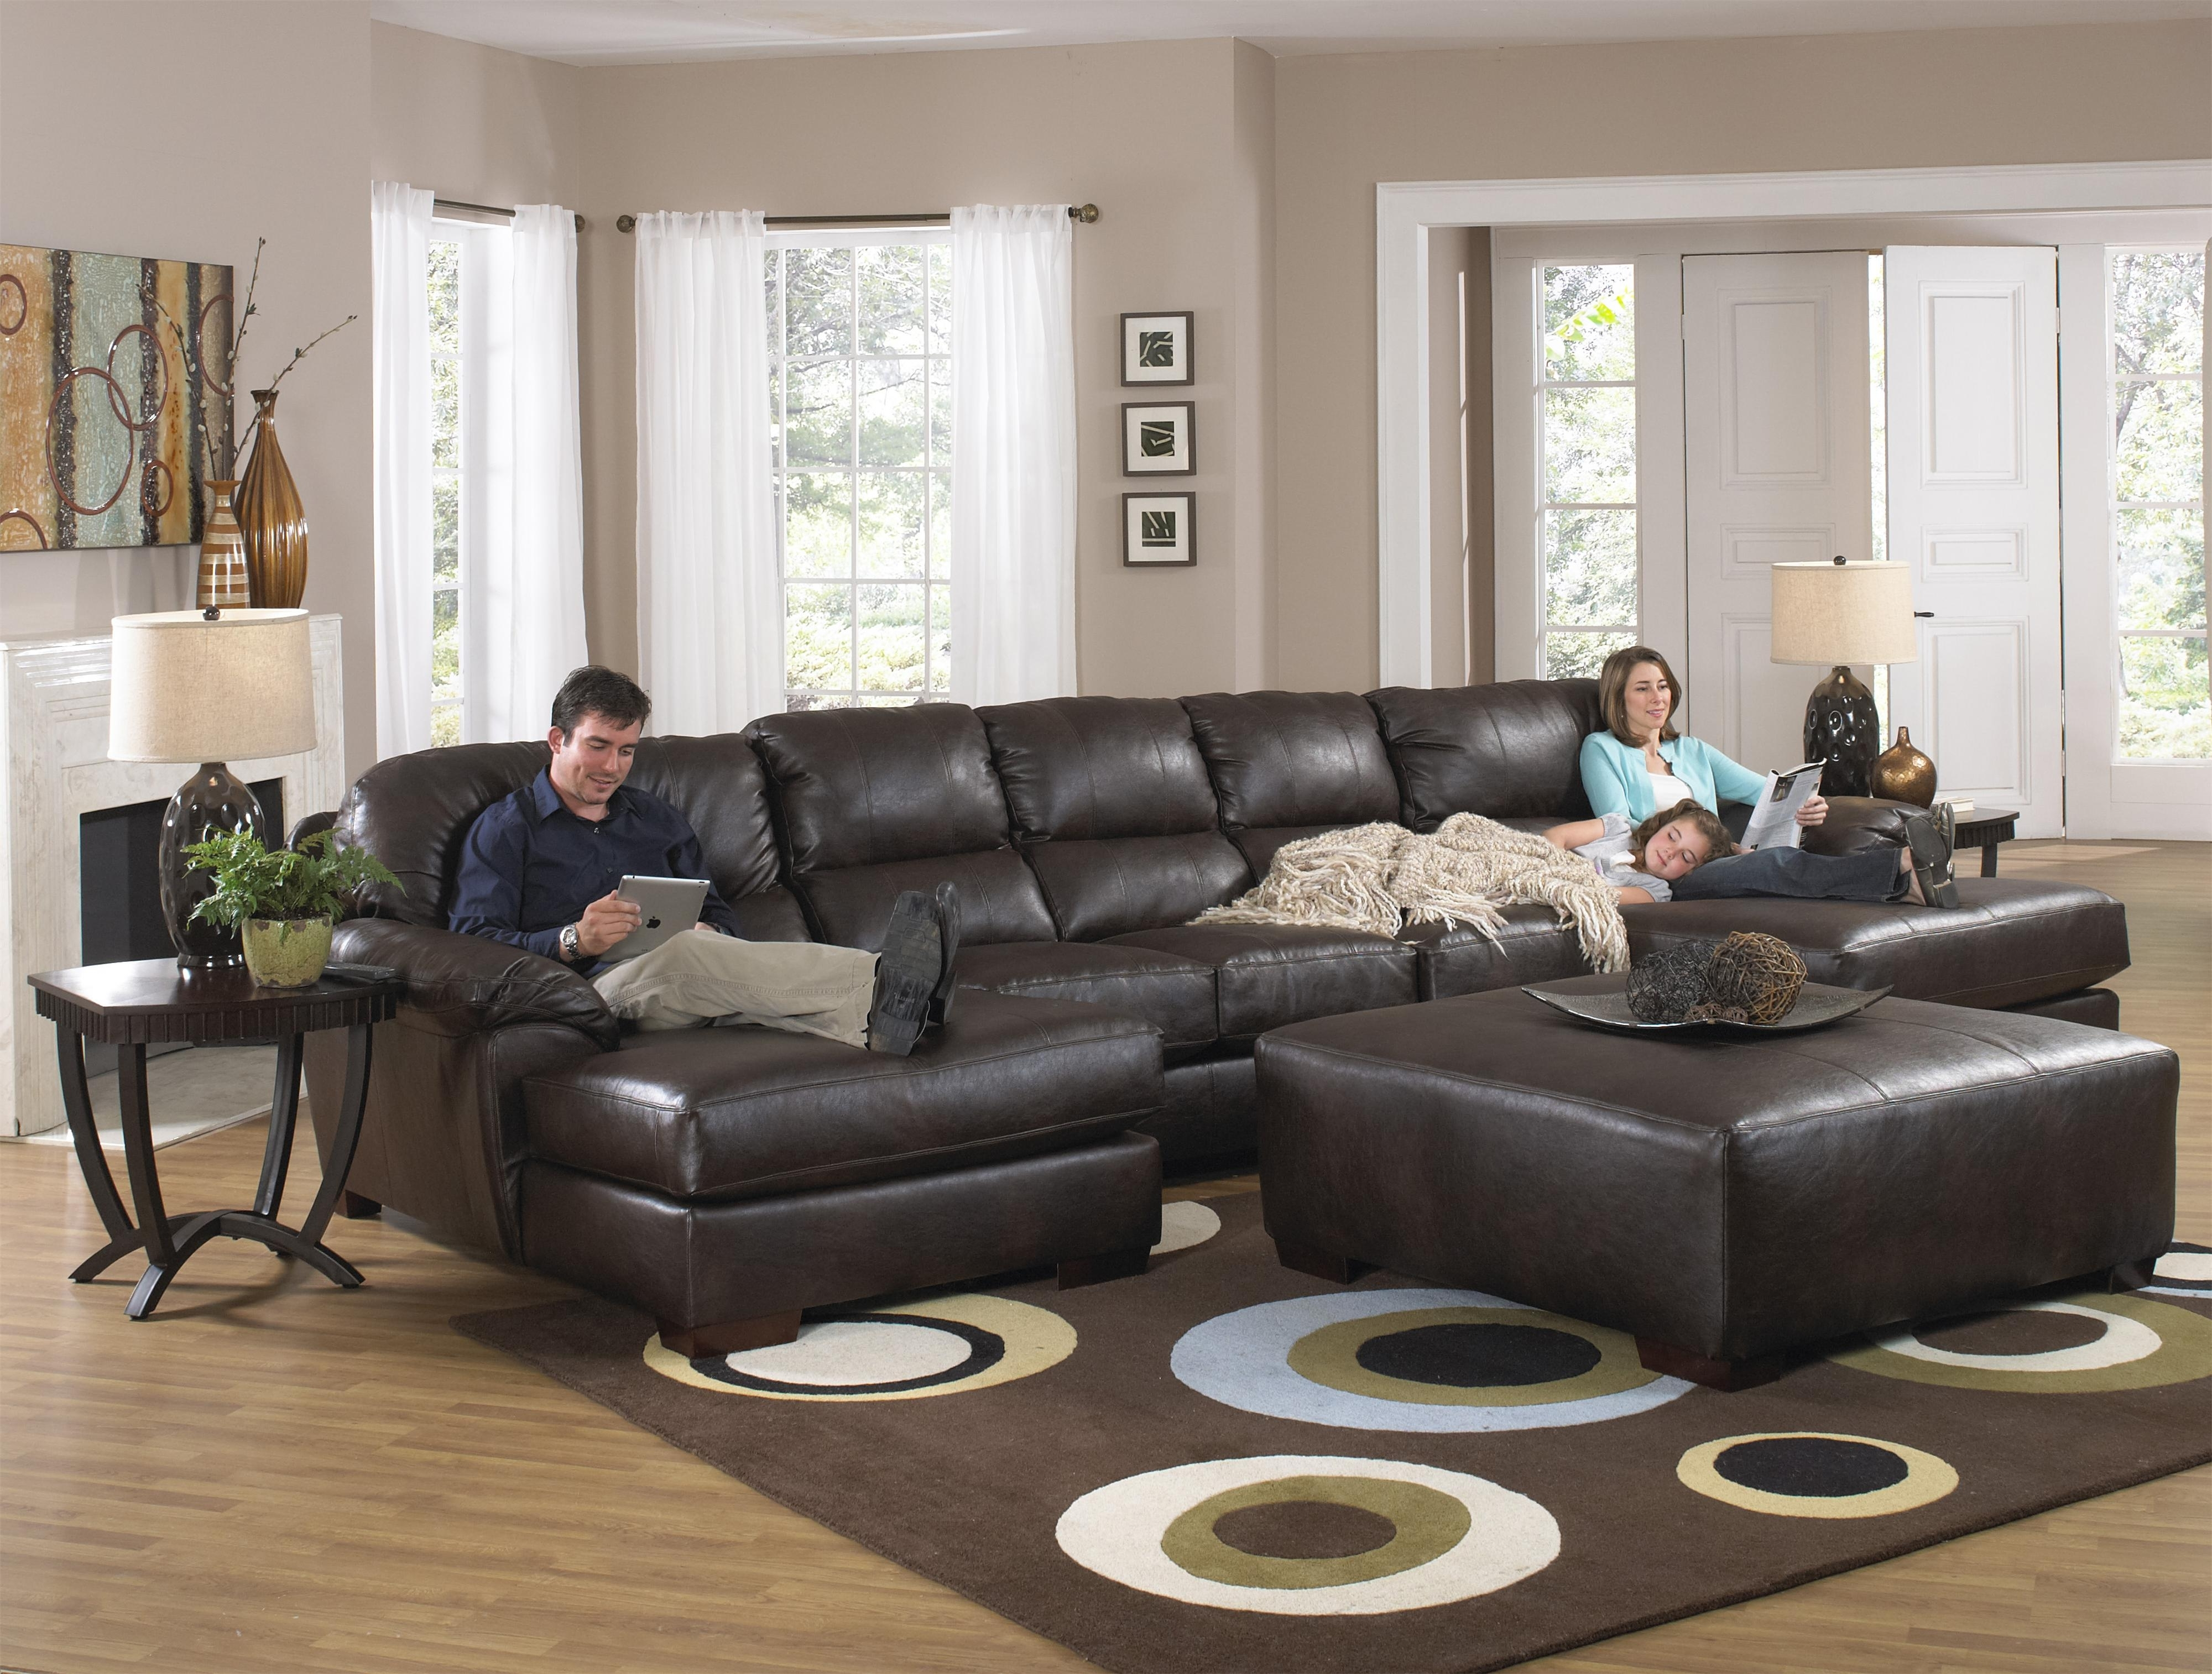 Leather Sectionals With Chaise And Ottoman Inside Favorite Sofa : Beautiful Large Sectional Sofa With Chaise L Shaped Cream (View 3 of 20)